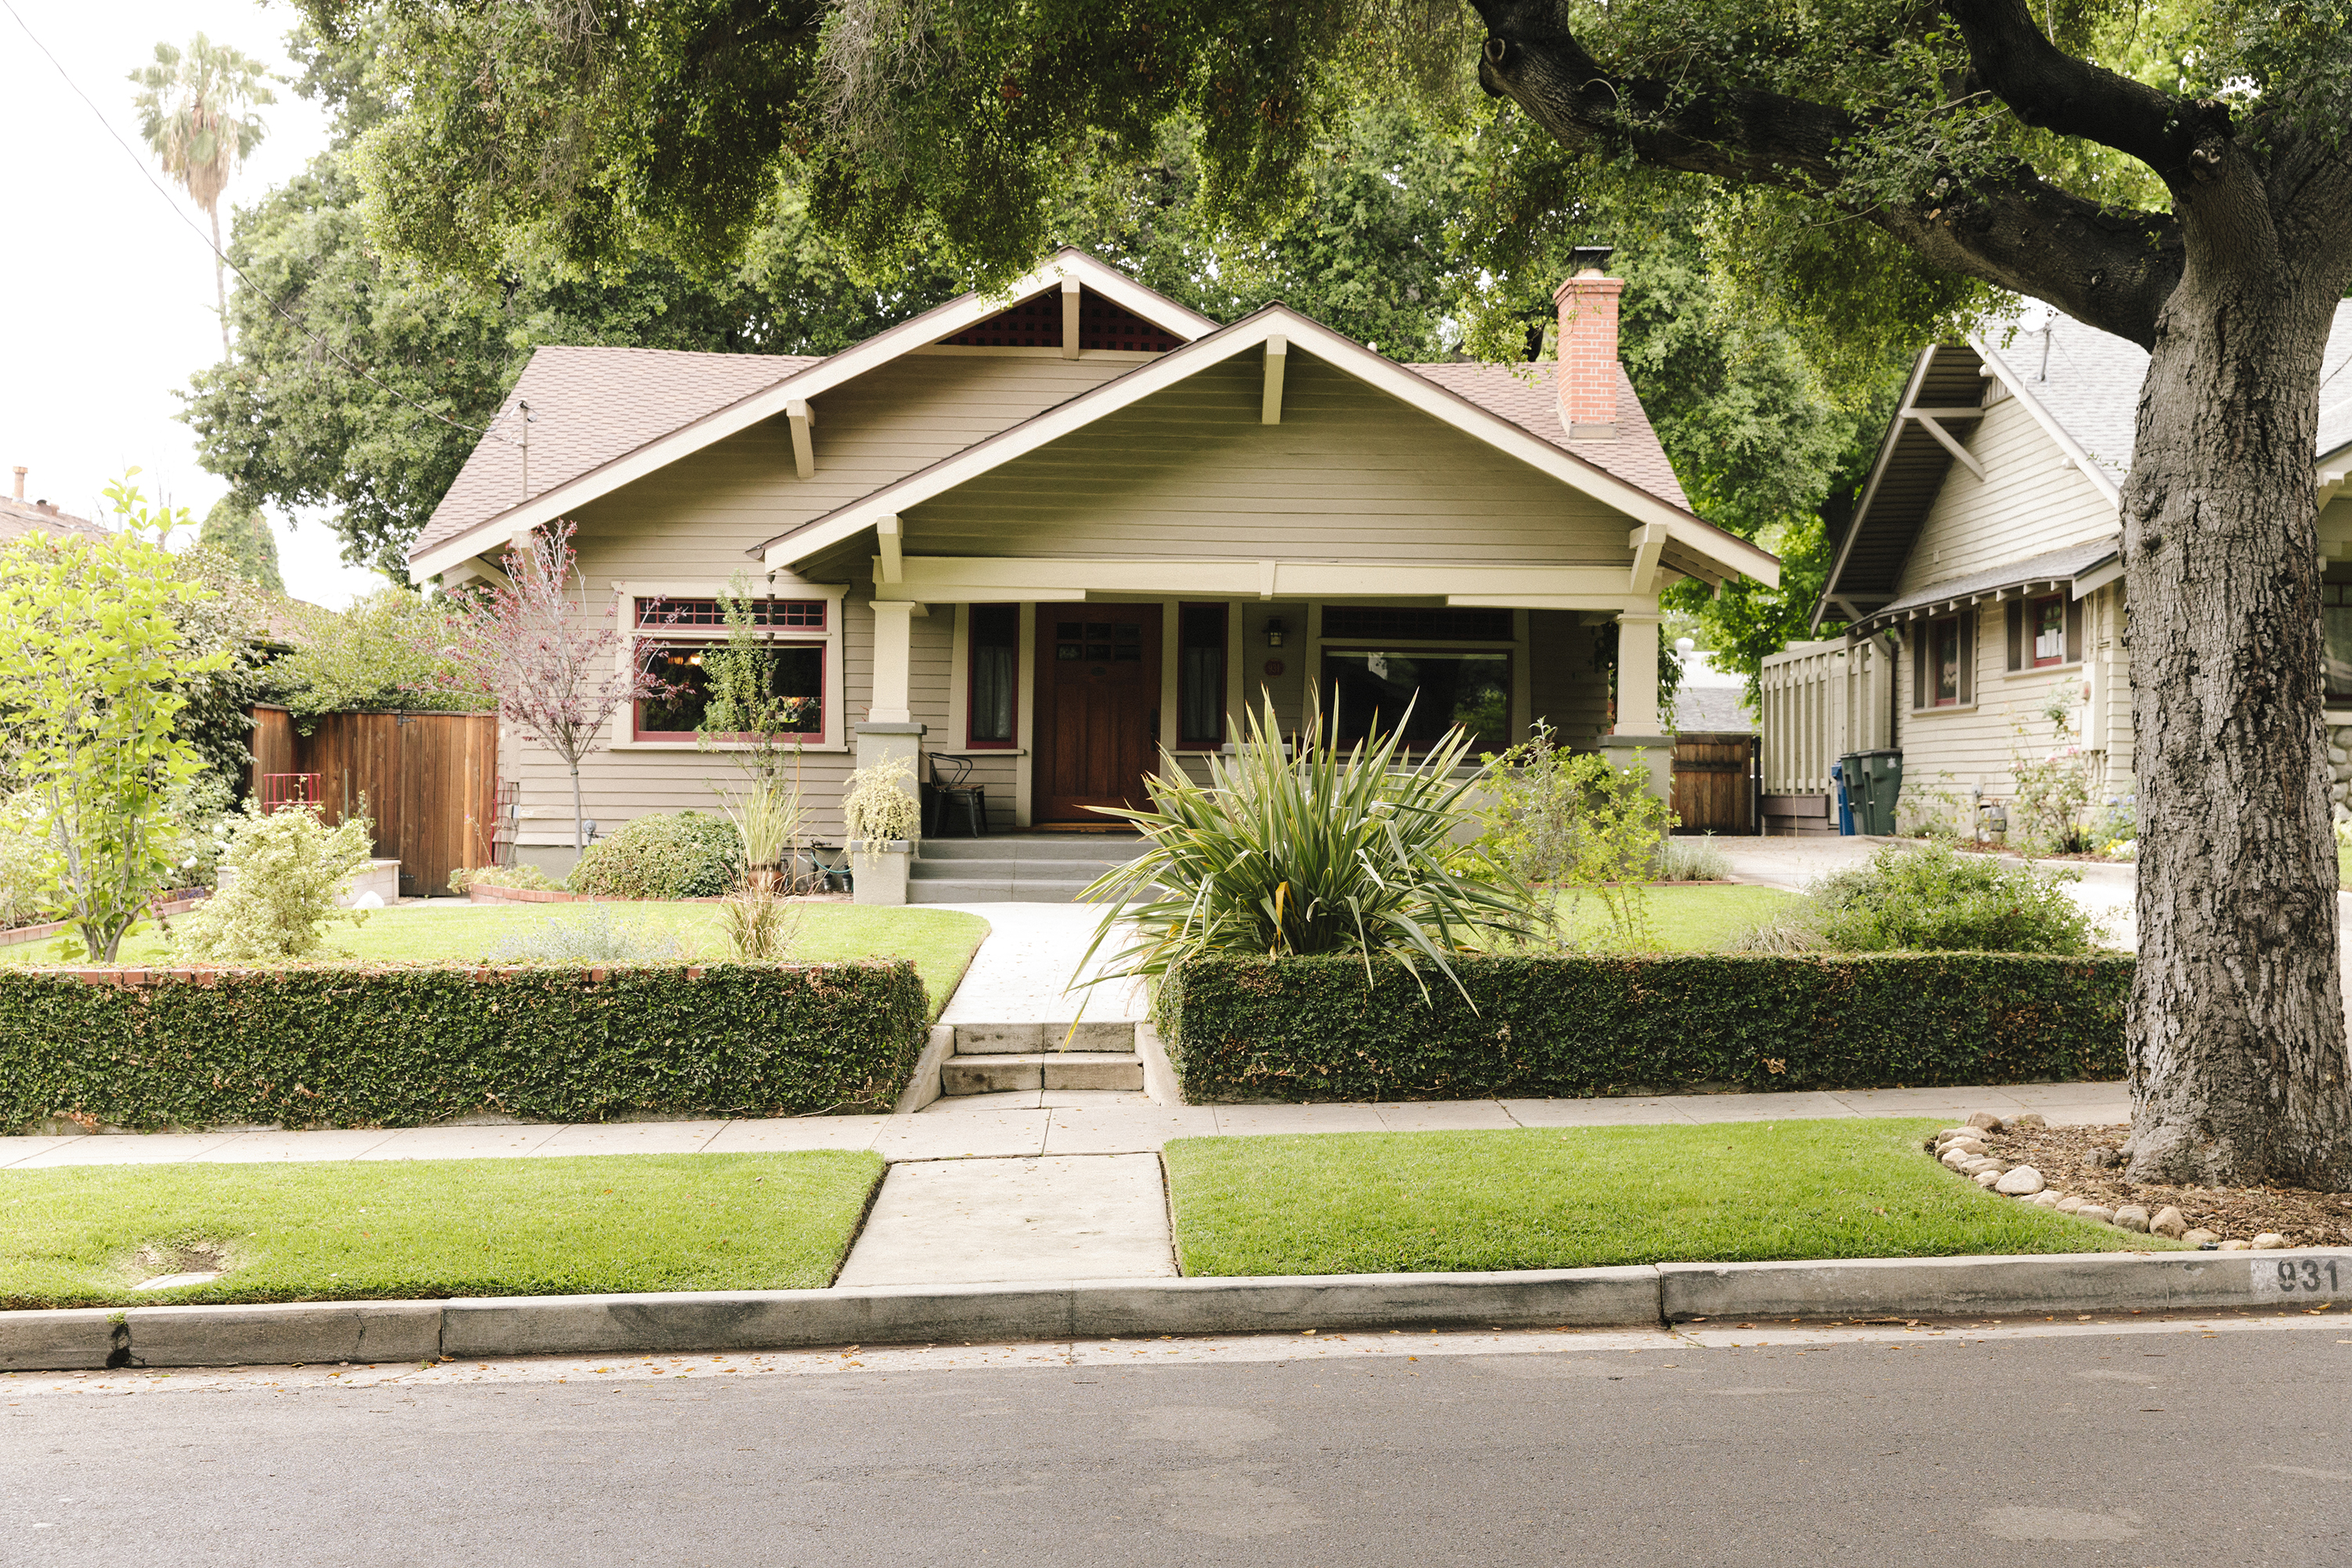 LA real estate market may be shifting toward buyers